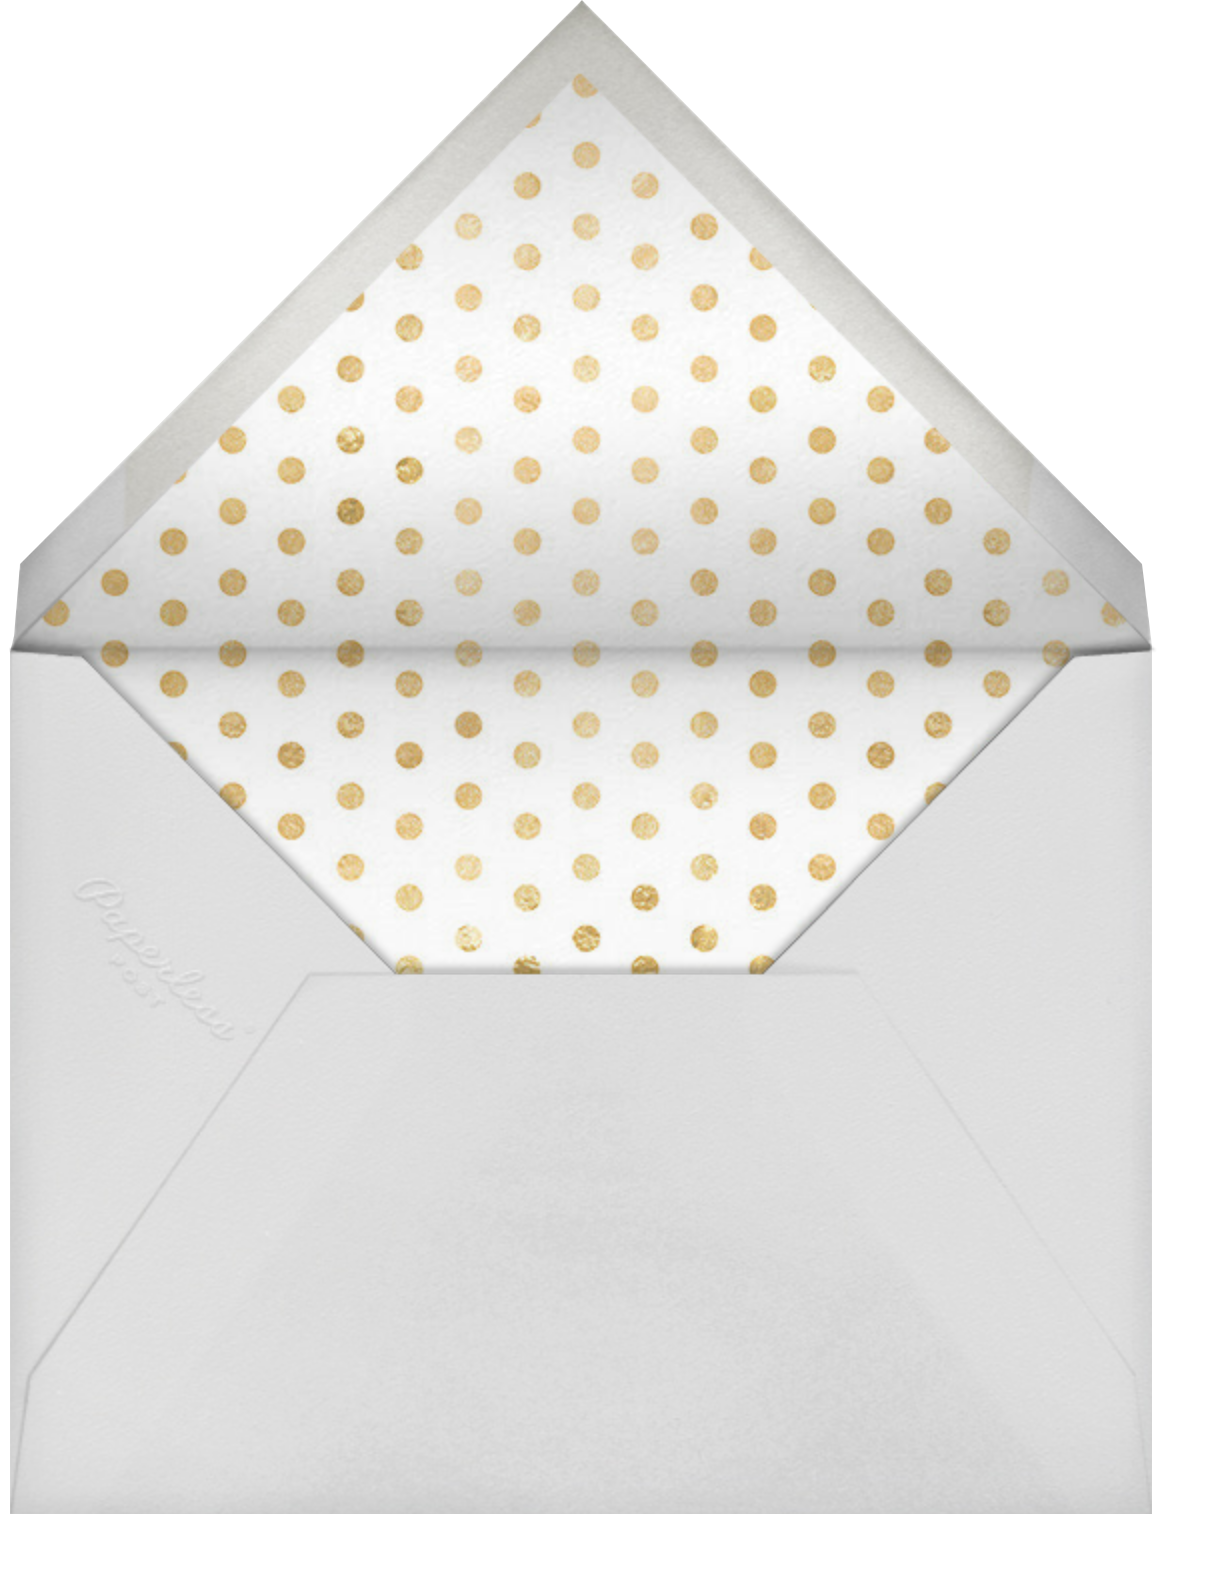 Magical Birthday (Invitation) - Forest Green - Rifle Paper Co. - Envelope